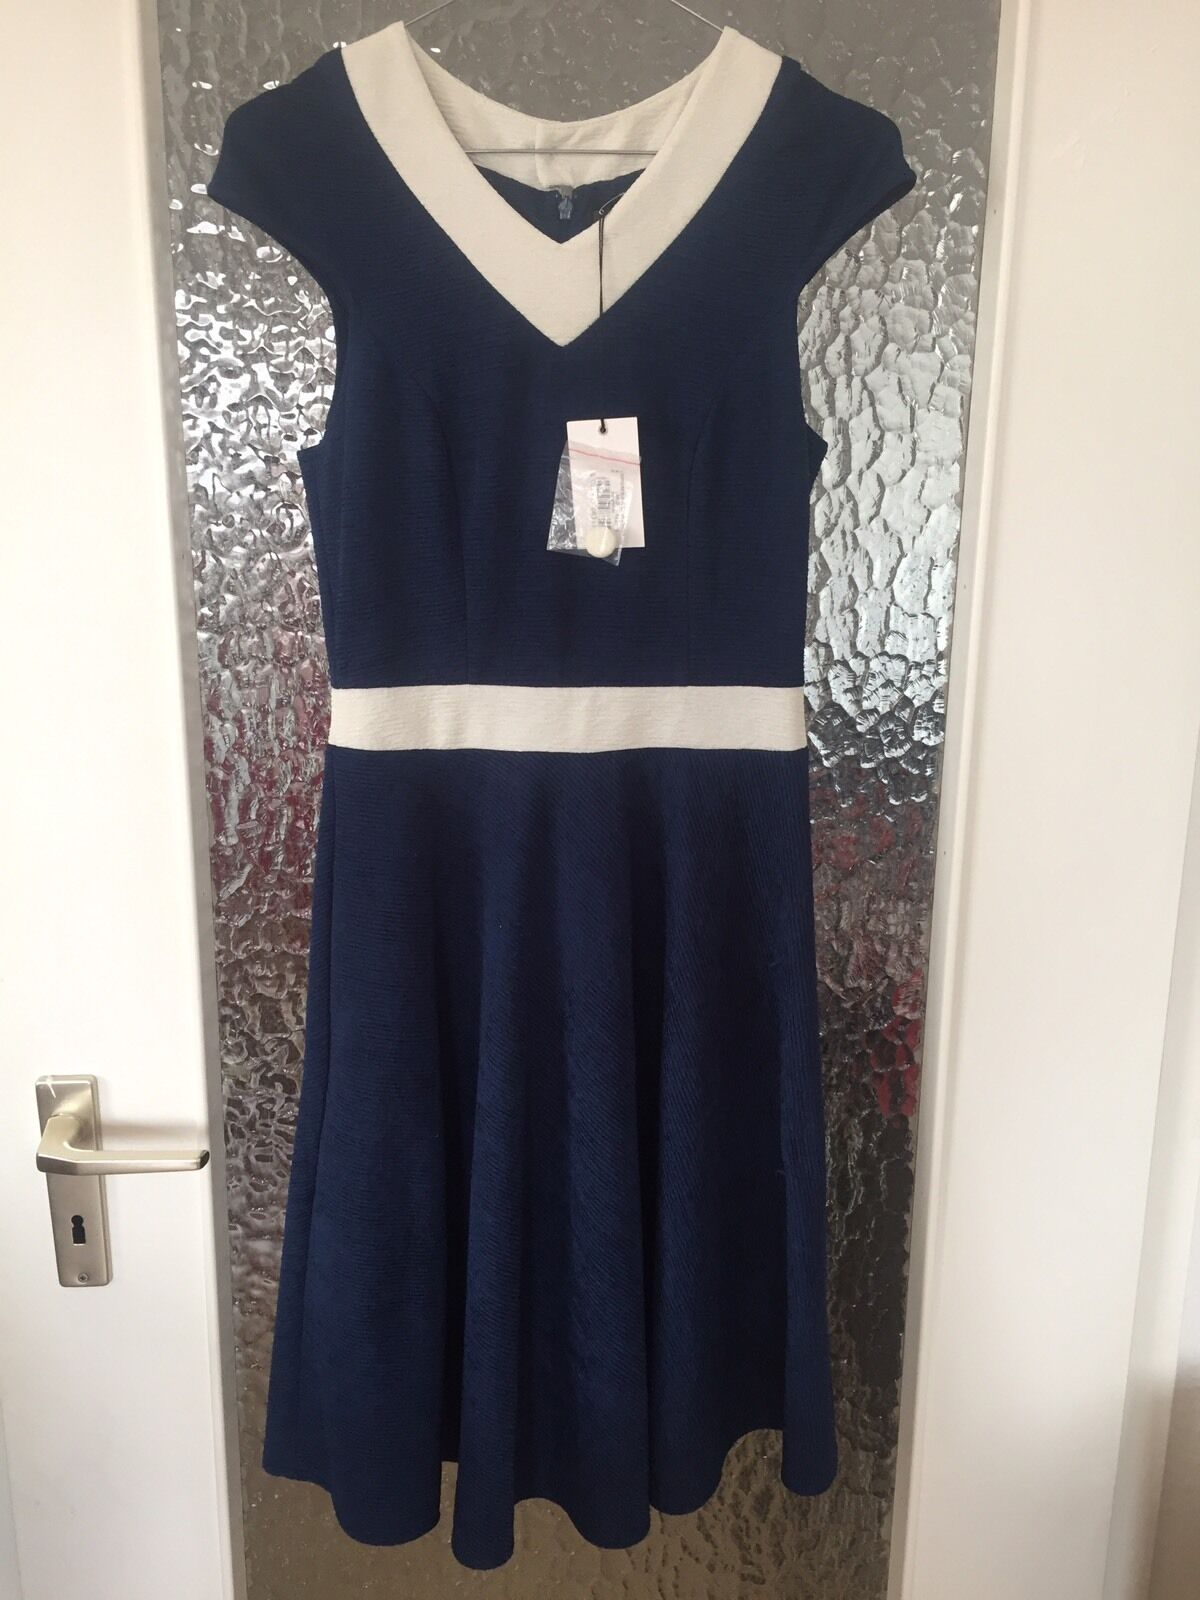 Fever London Lombardia A Line Dress Navy White Vintage Kleid 34 NEU